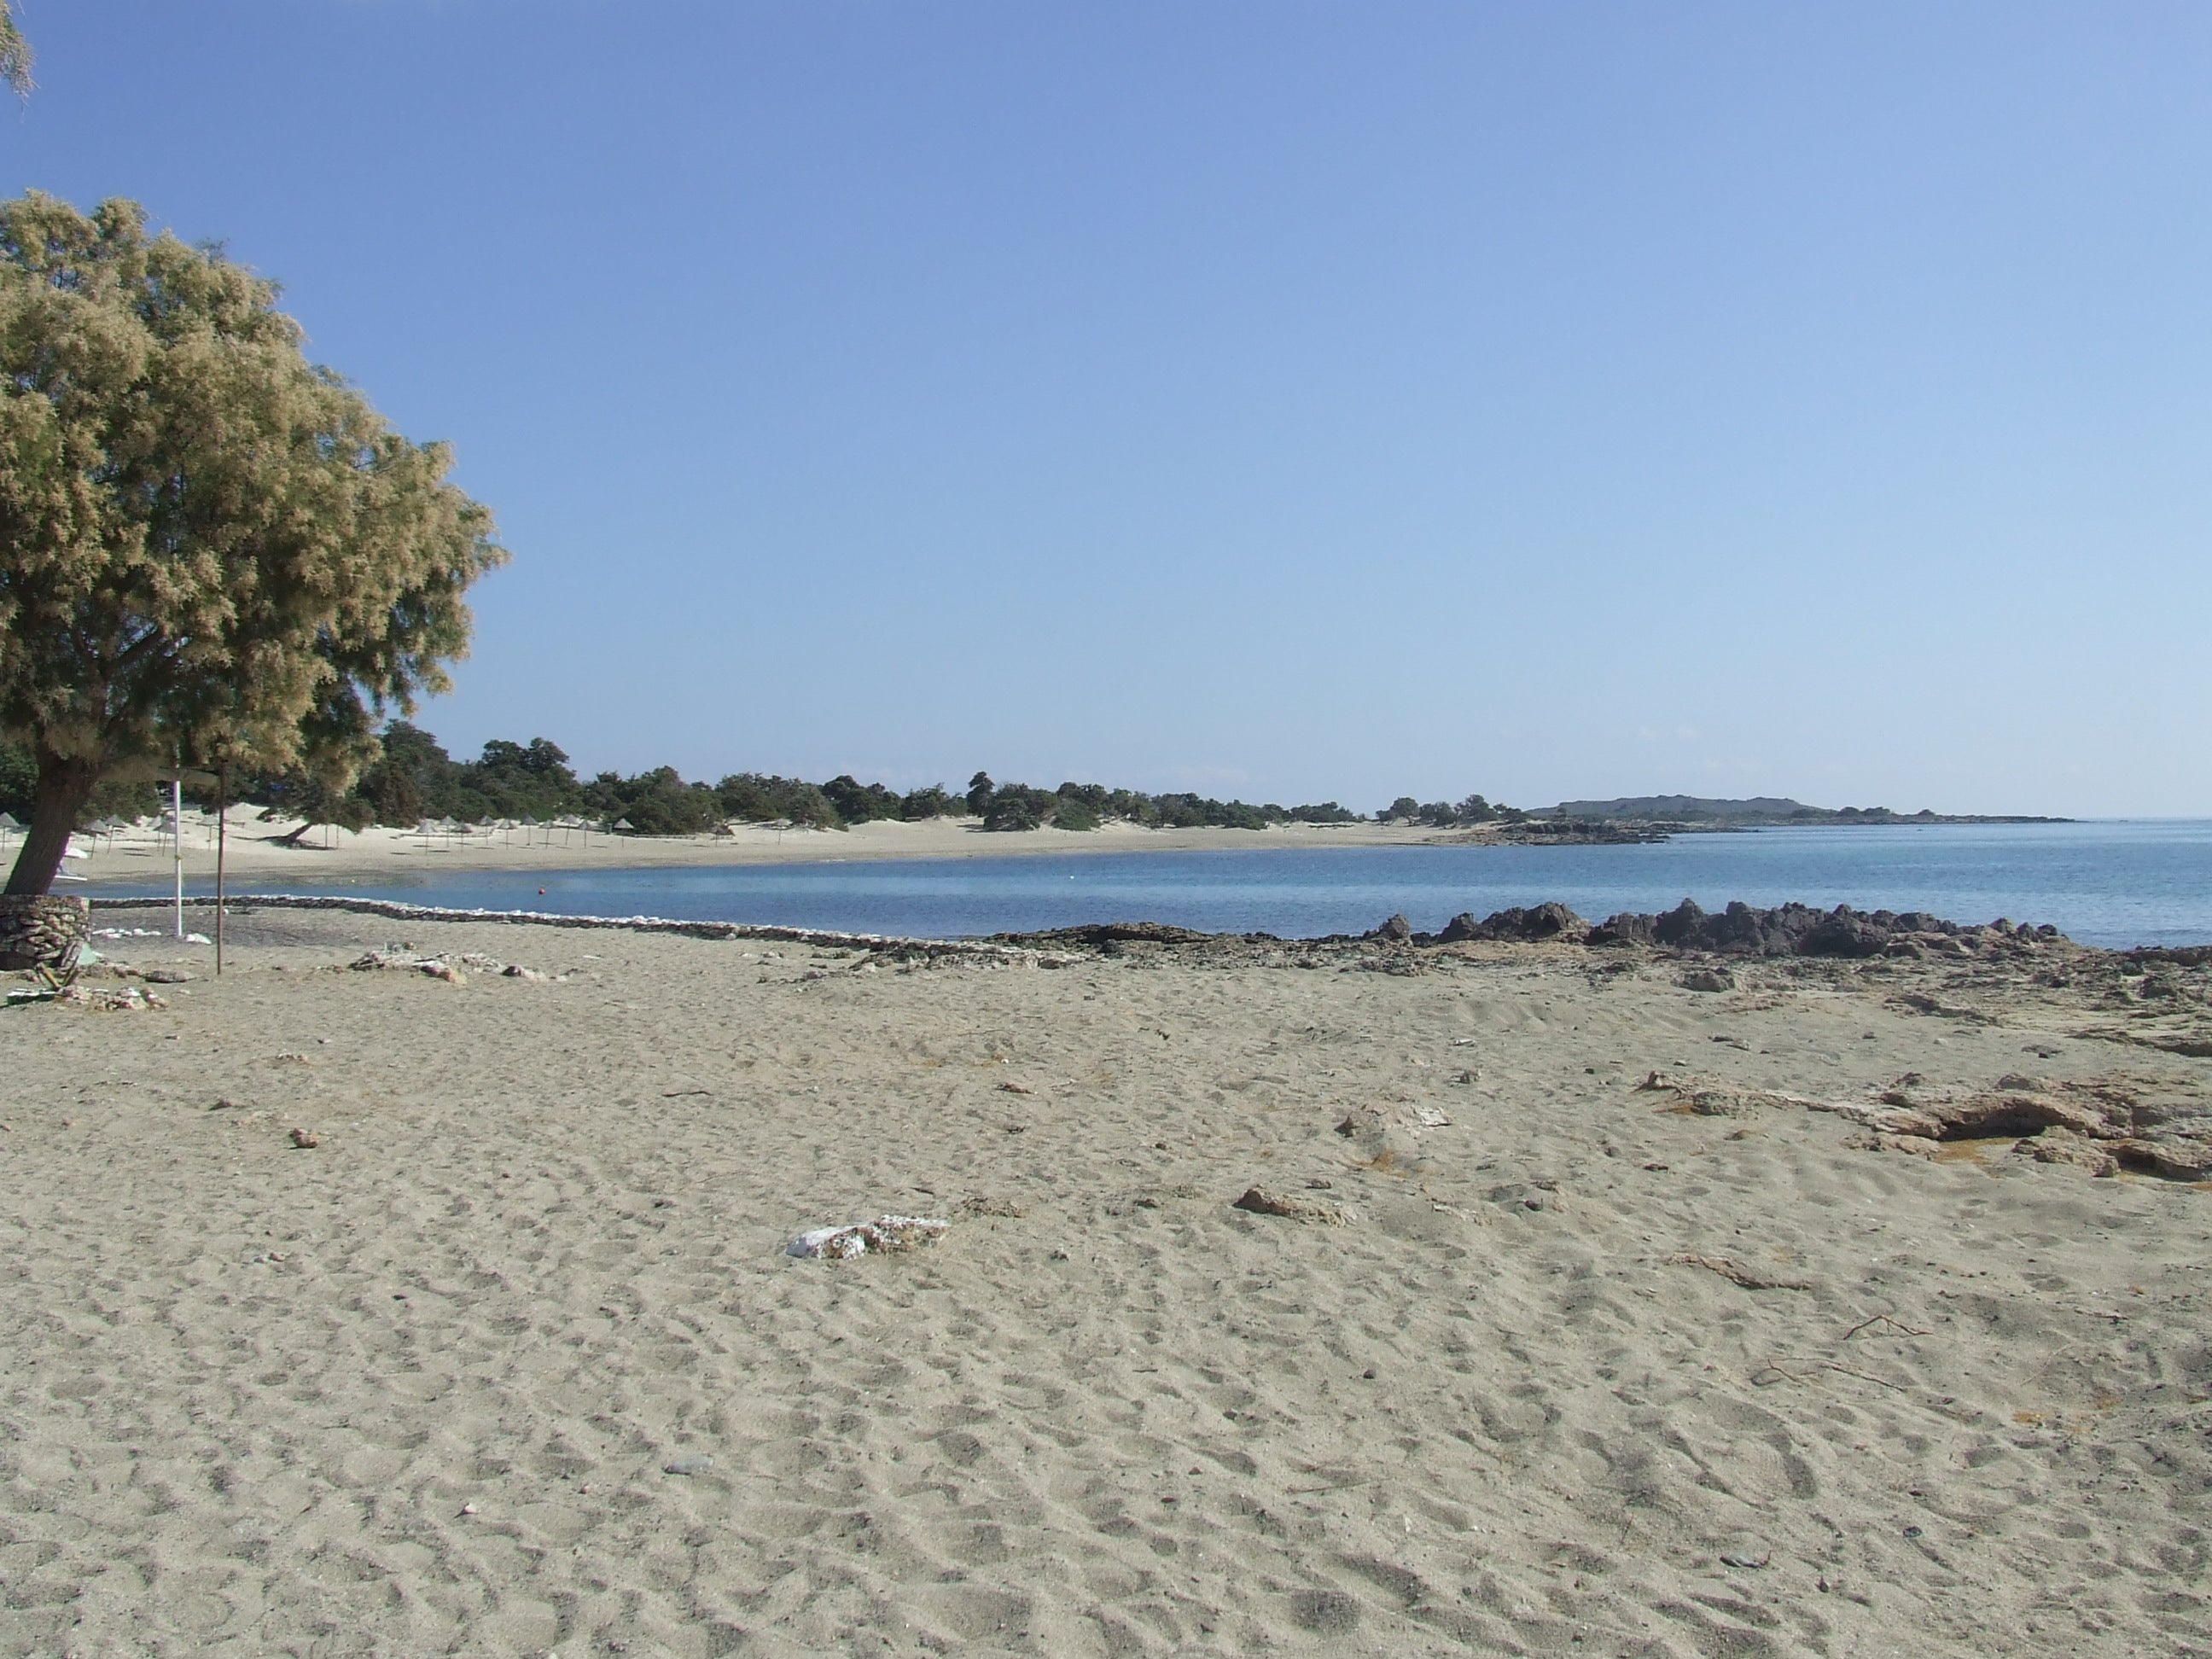 Playa en Isla de Chrissi